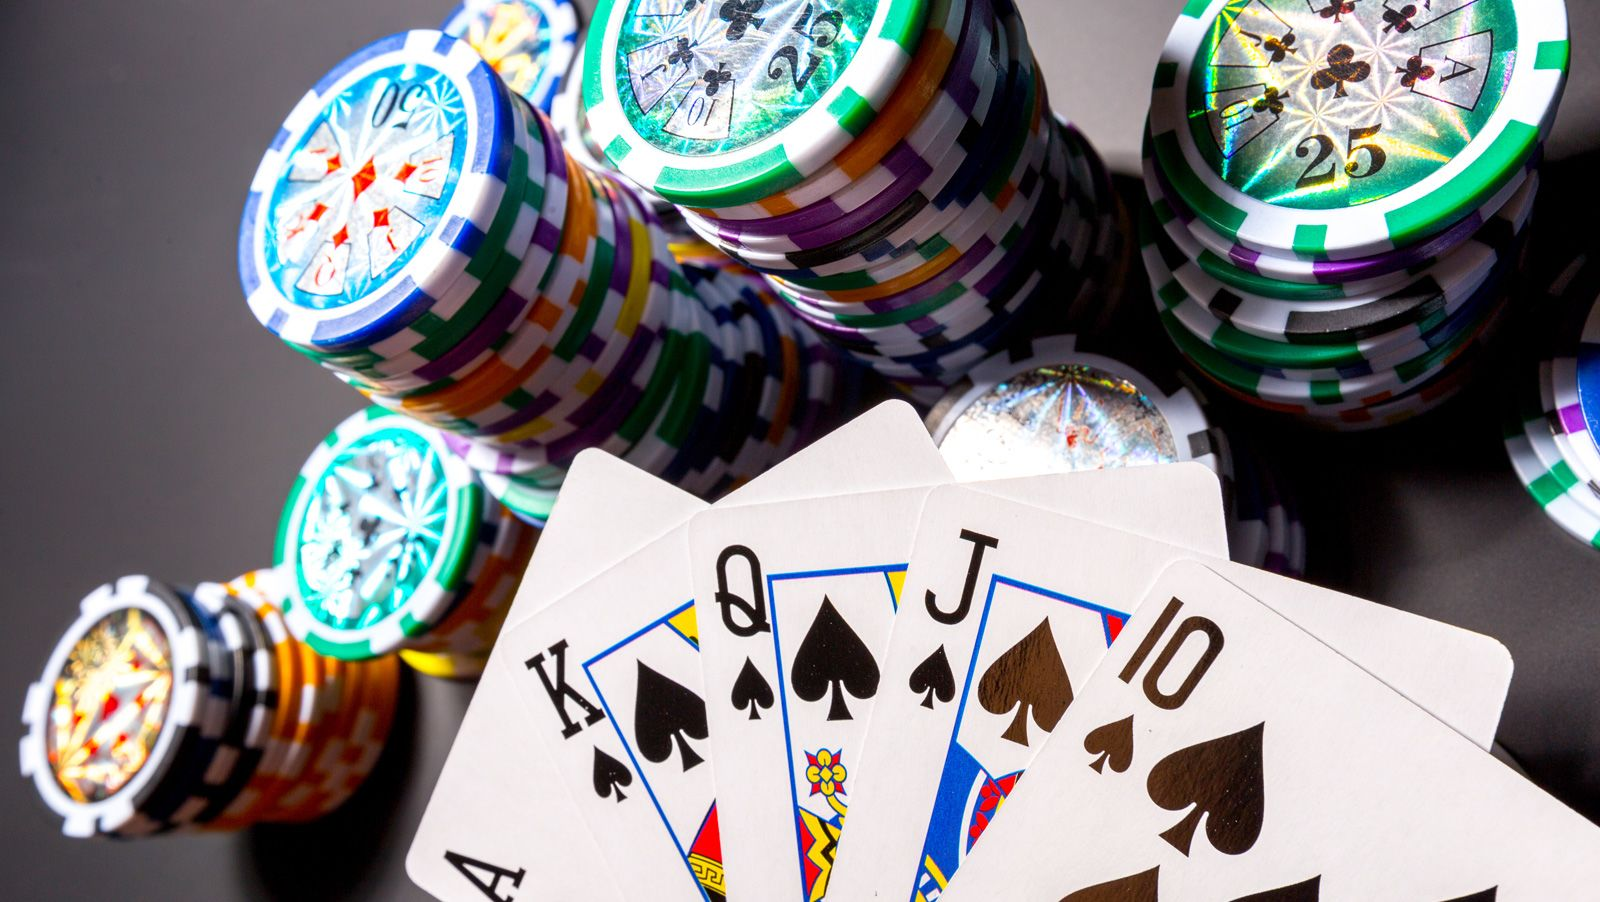 Calling The Clock: Obst leads WSOP POY; 888Poker shot clock excitement